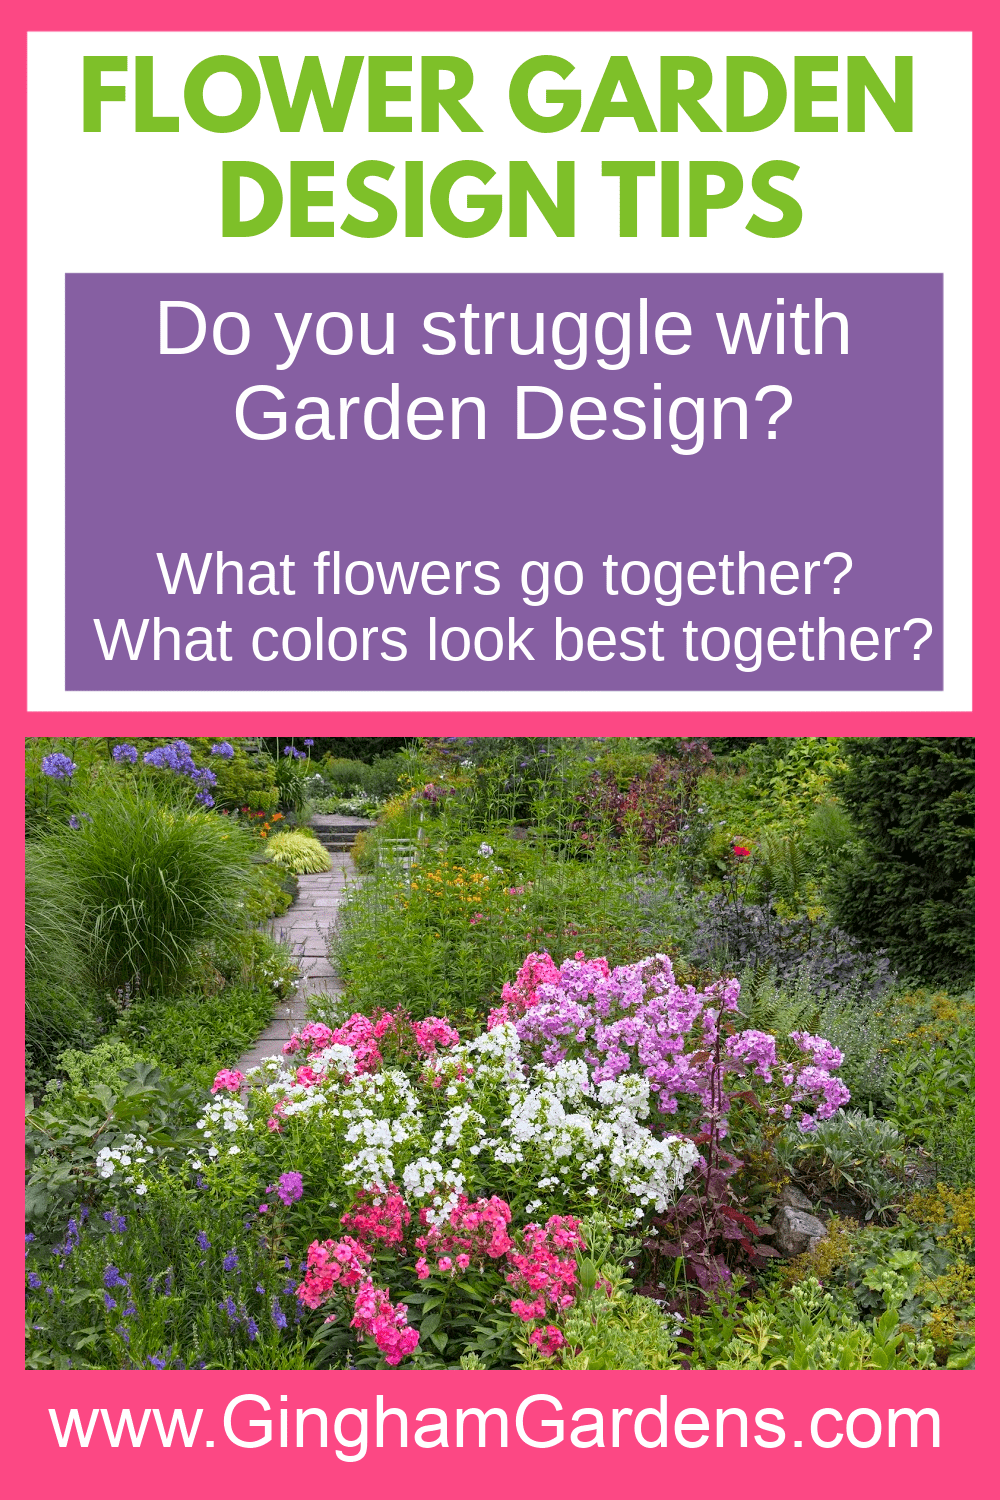 Image of Flower Garden with Text Overlay - Flower Garden Design Tips